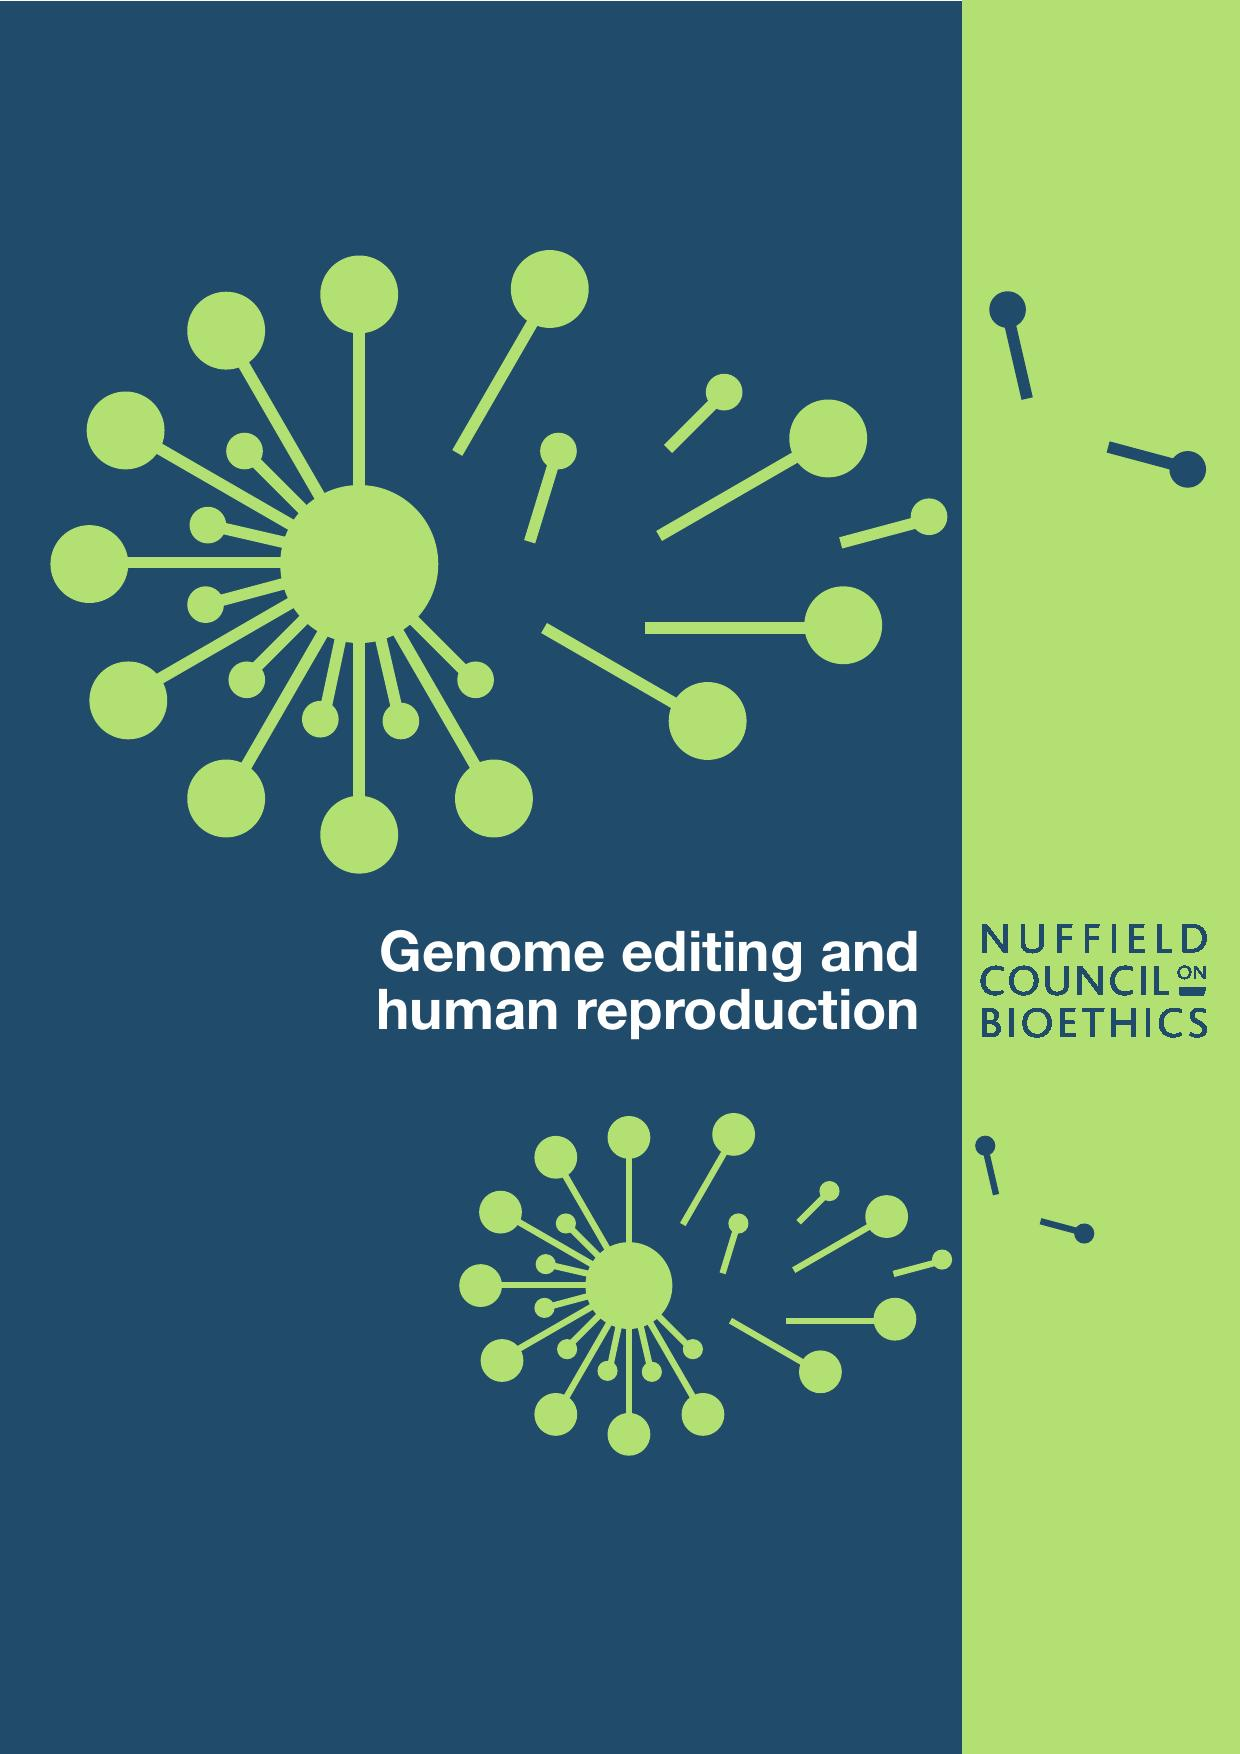 Genome editing and human reproduction